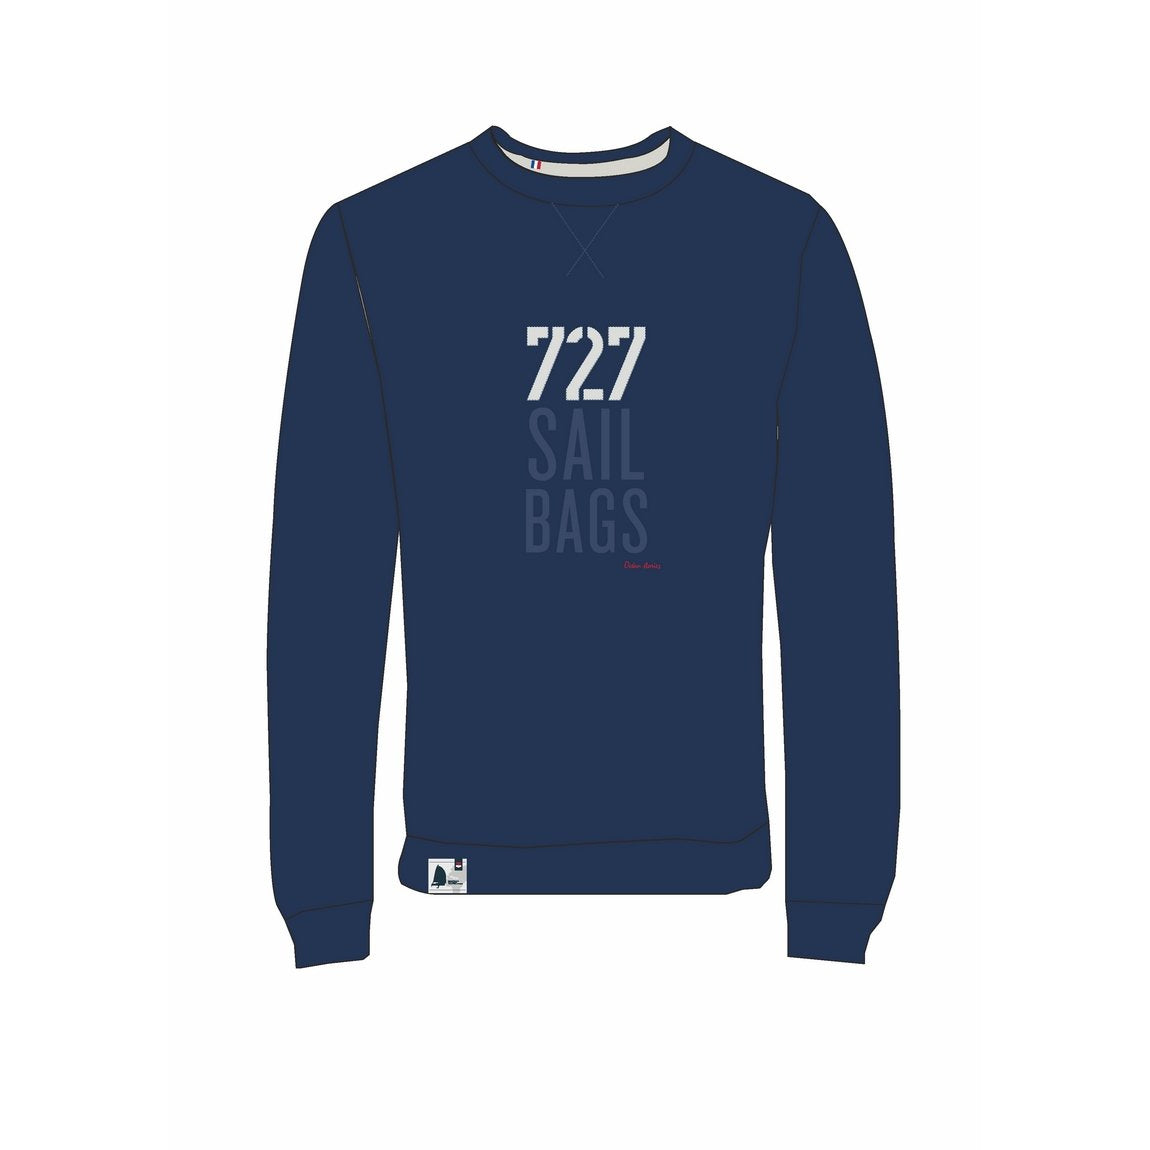 727 sweat-shirt Spinnaker